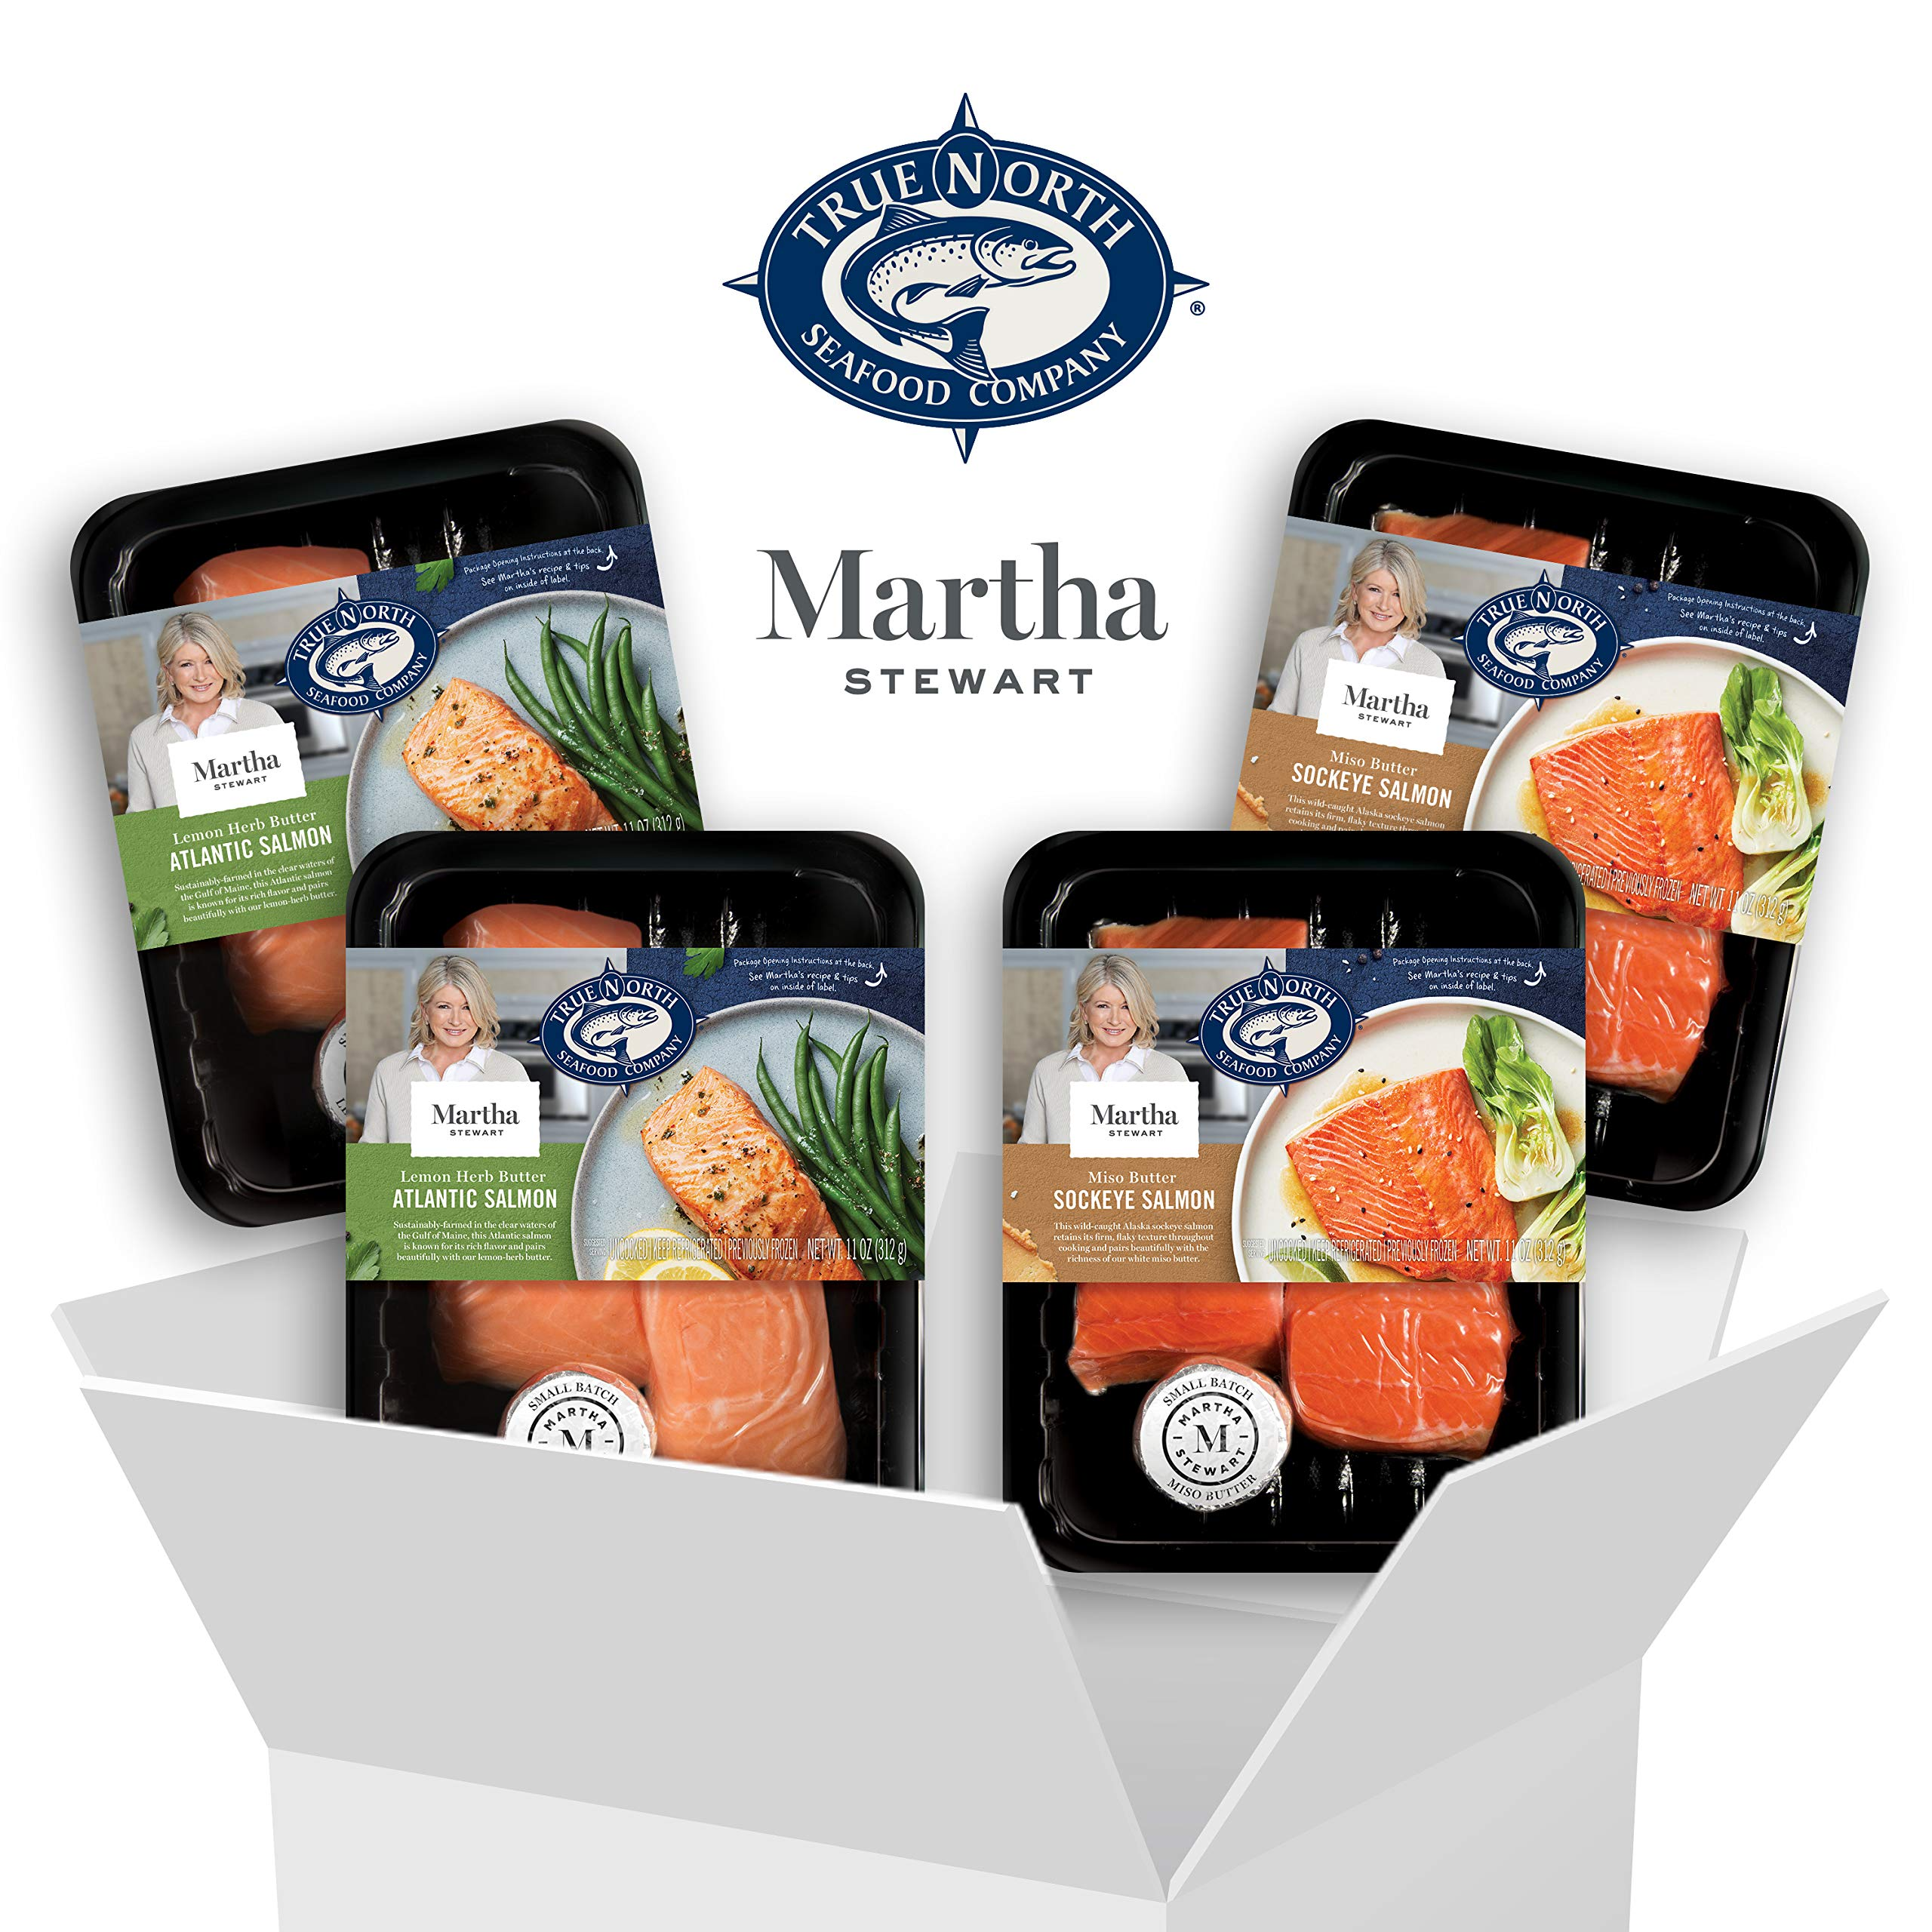 Martha Stewart for True North Seafood: Simple and Easy Sockeye Salmon with Miso Butter and Atlantic Salmon with Lemon Herb Butter - (Pack of 4) 11 oz. Trays by True North Seafood Company (Image #1)